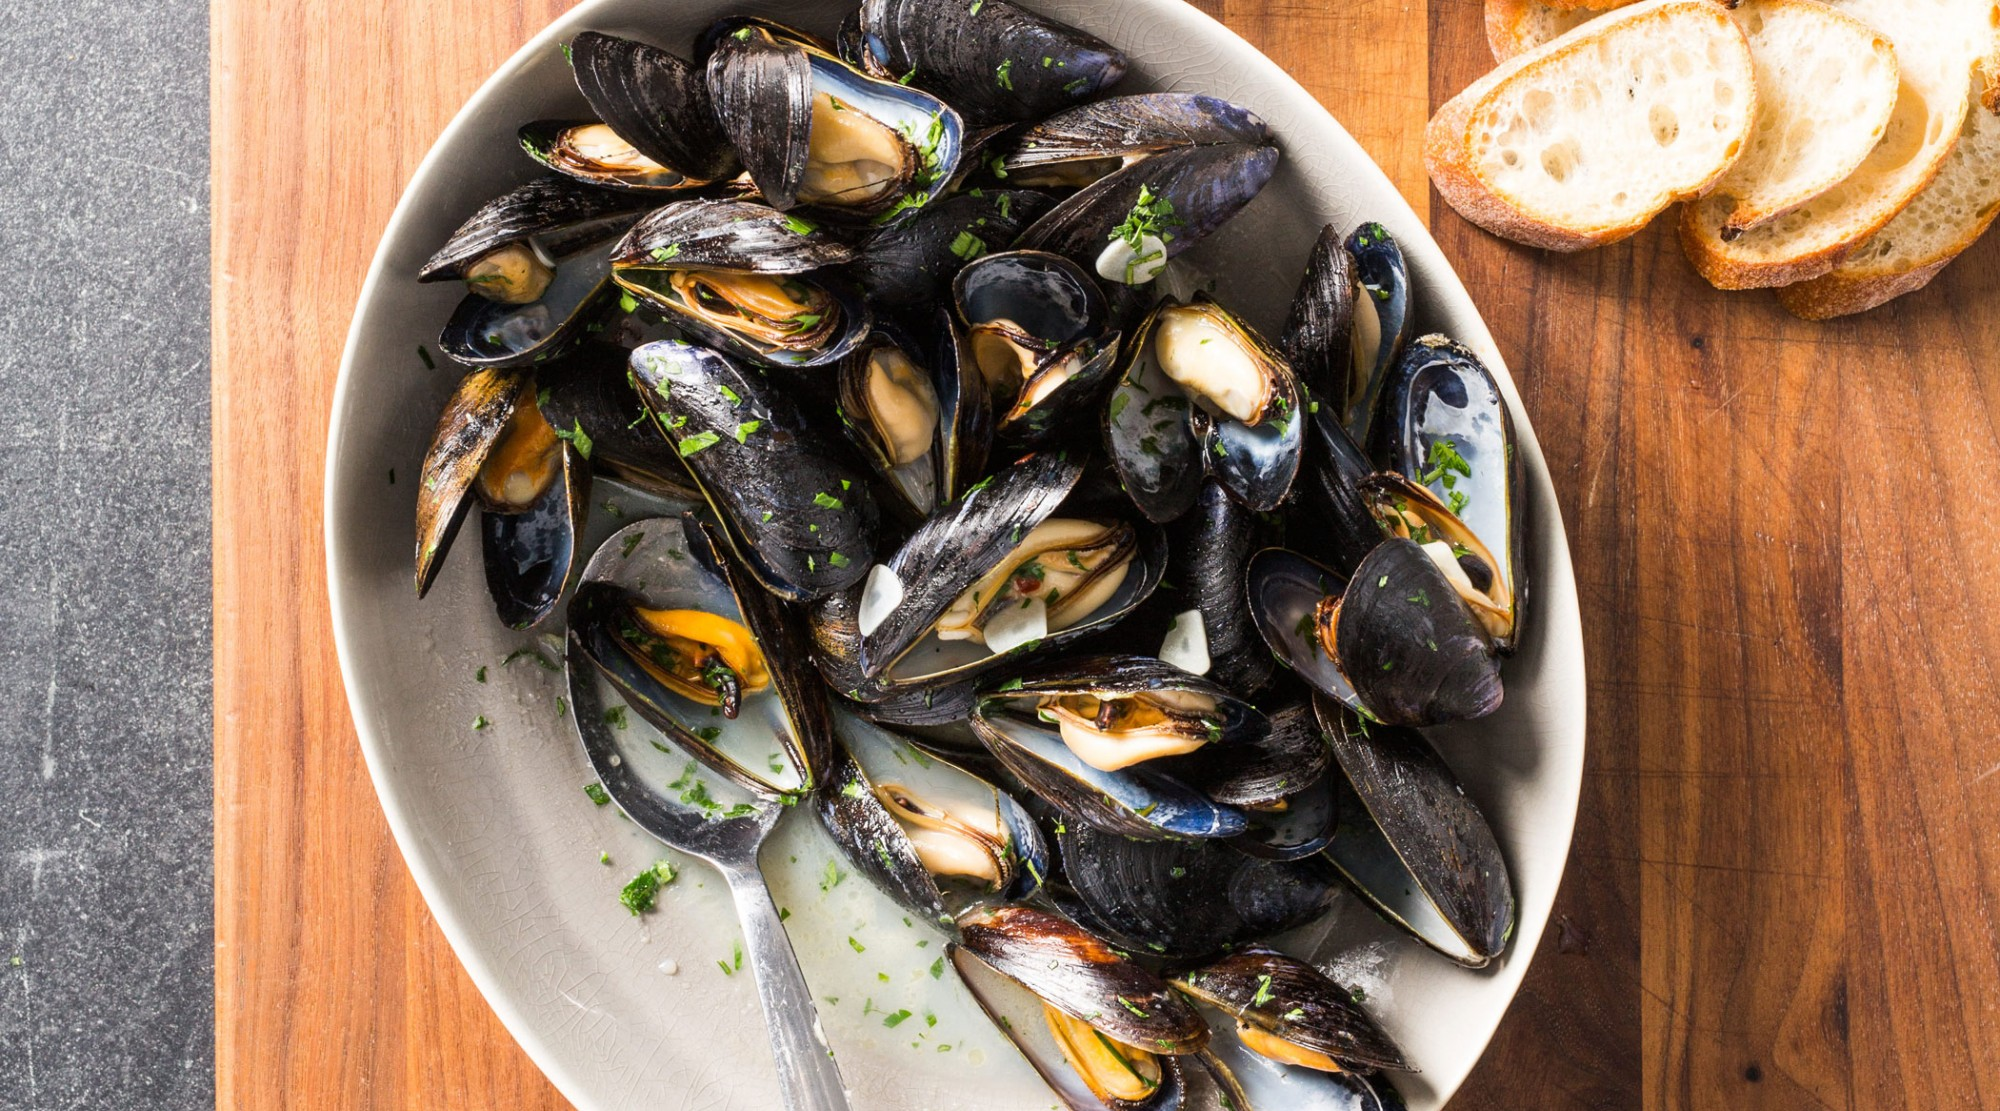 Mussels with White Wine and Garlic | The Splendid Table